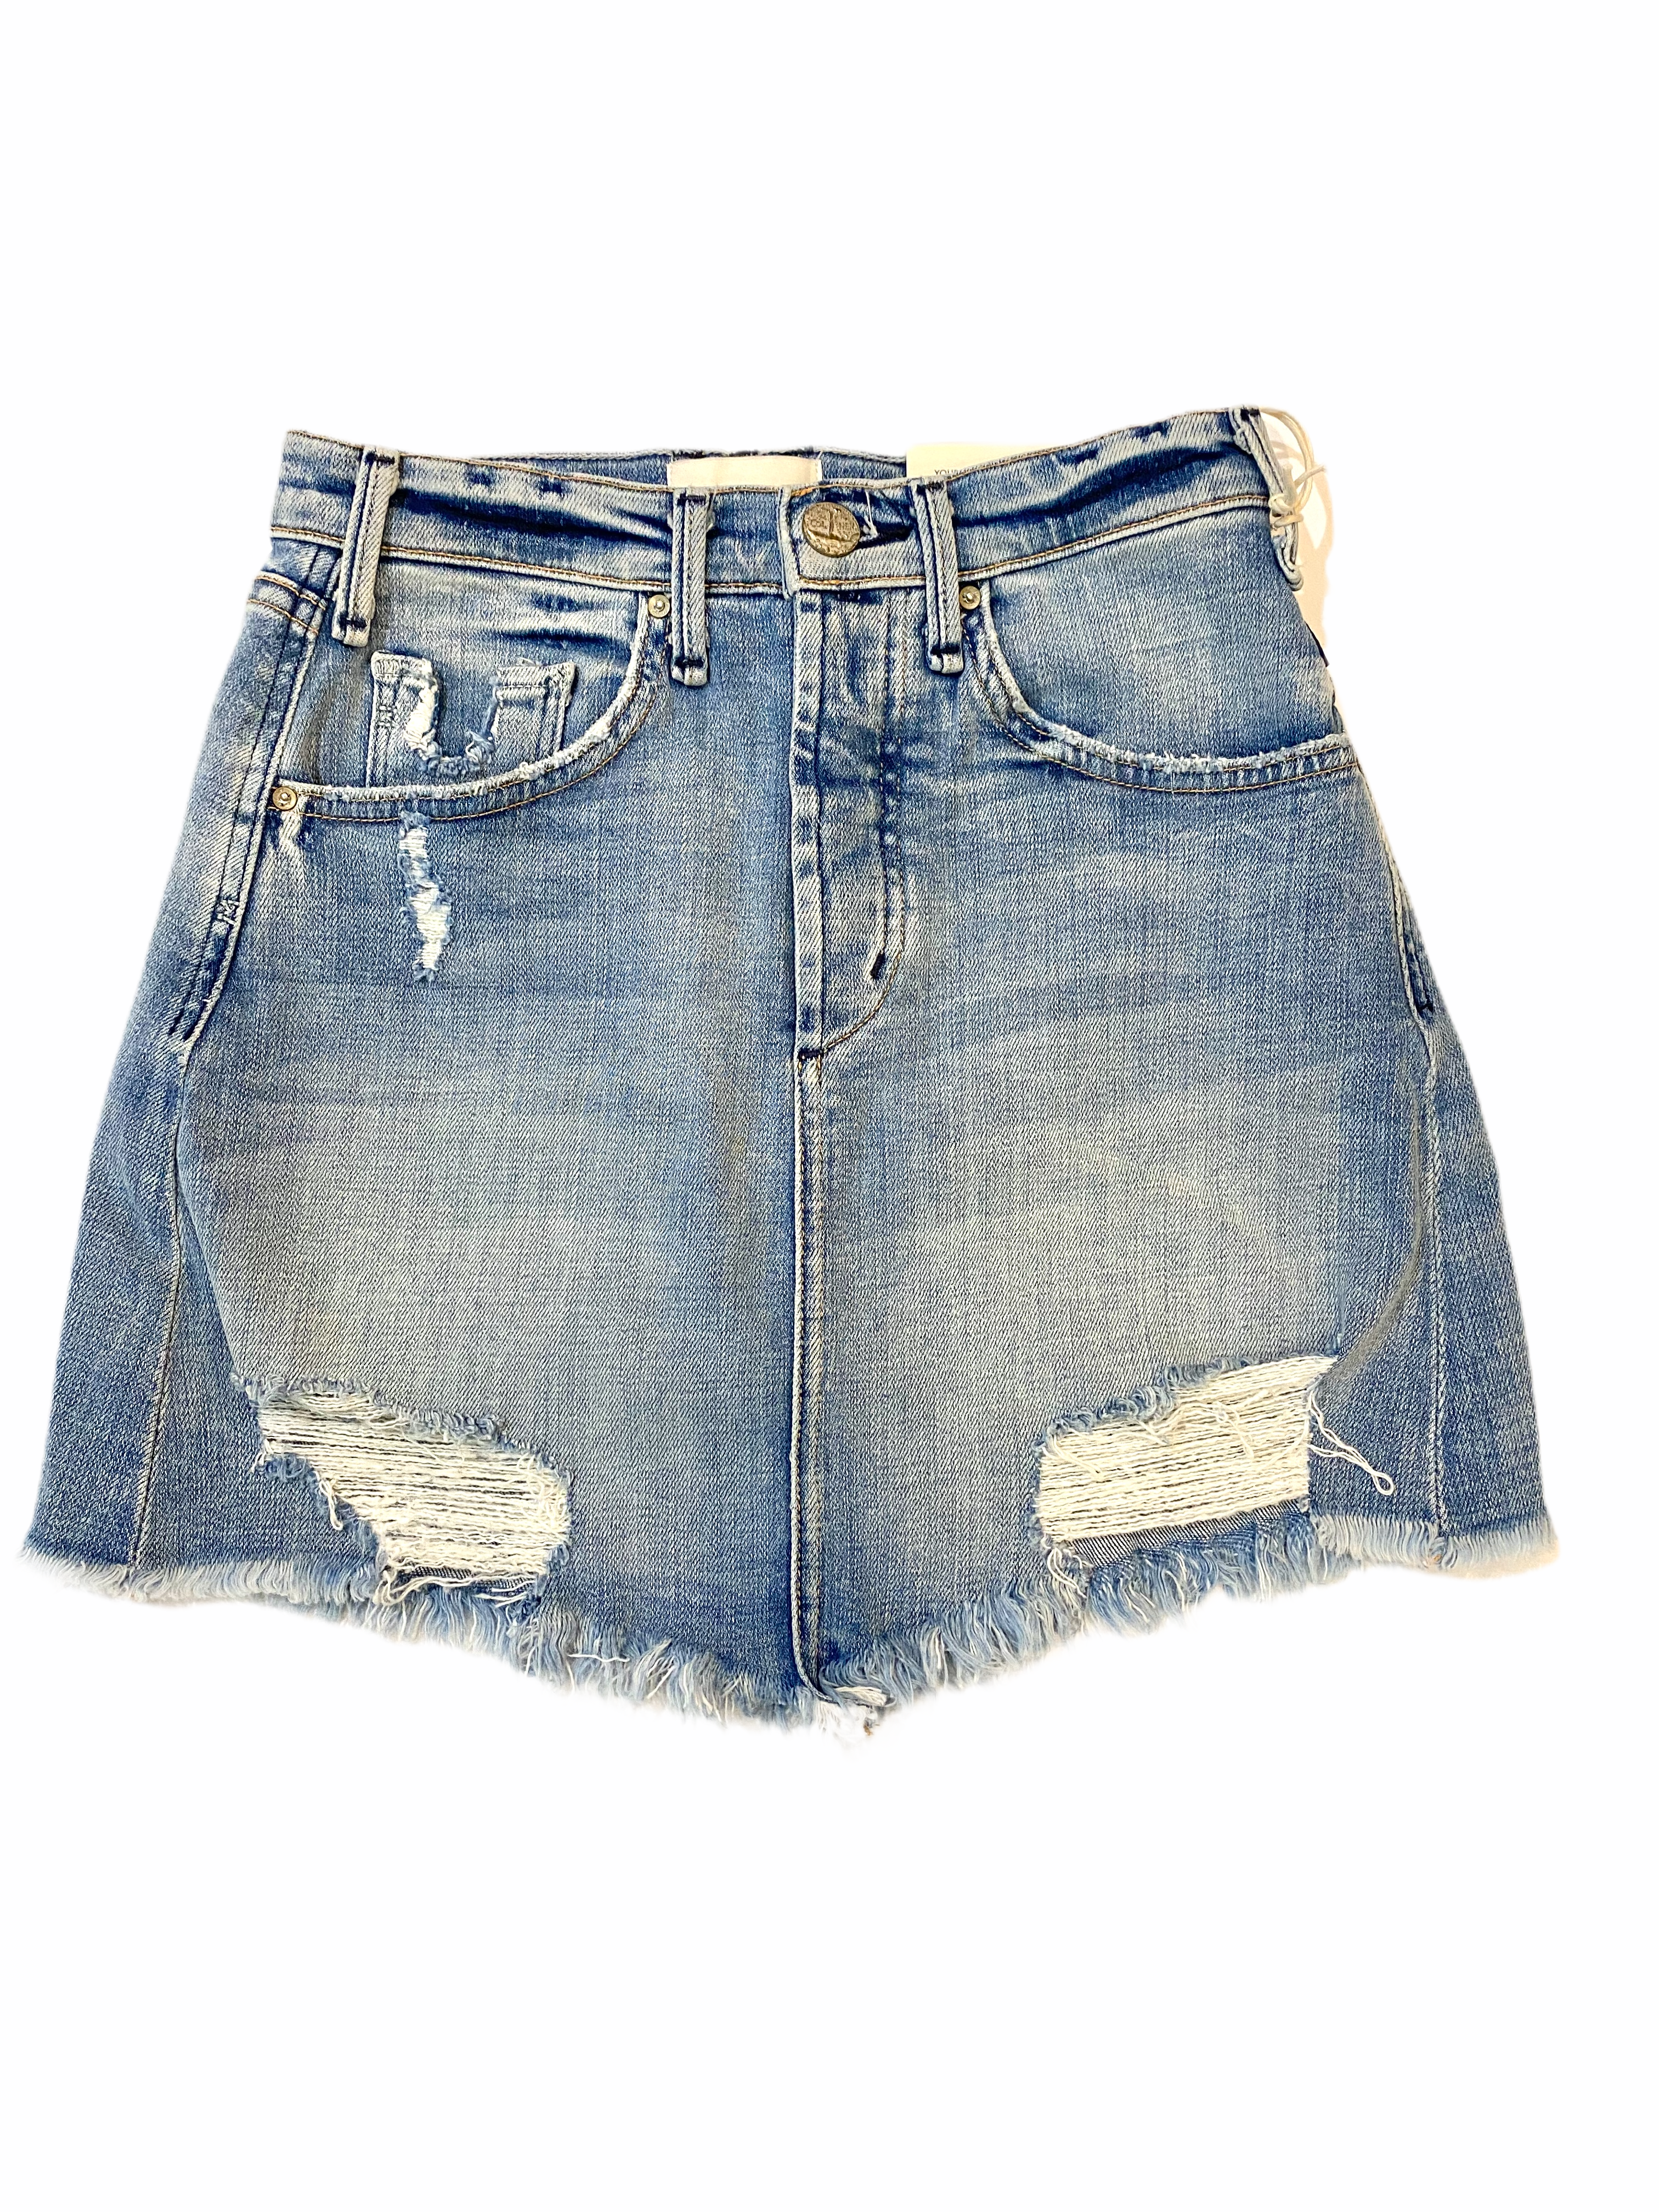 McGuire Isabel Denim Skirt